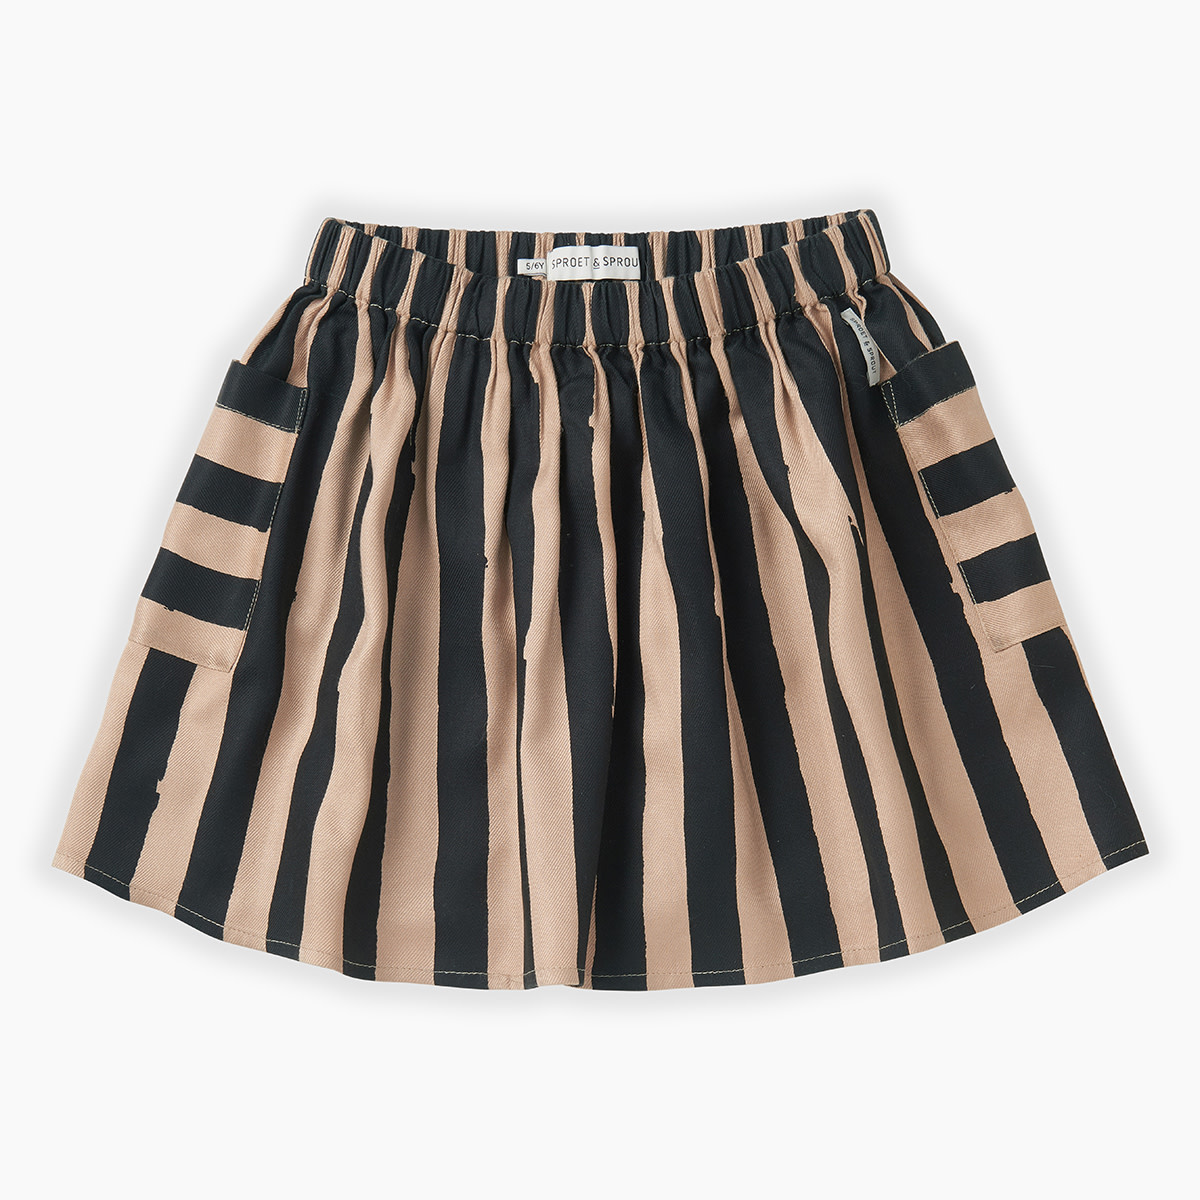 Sproet & Sprout Sproet&Sprout - Skirt Painted Stripe